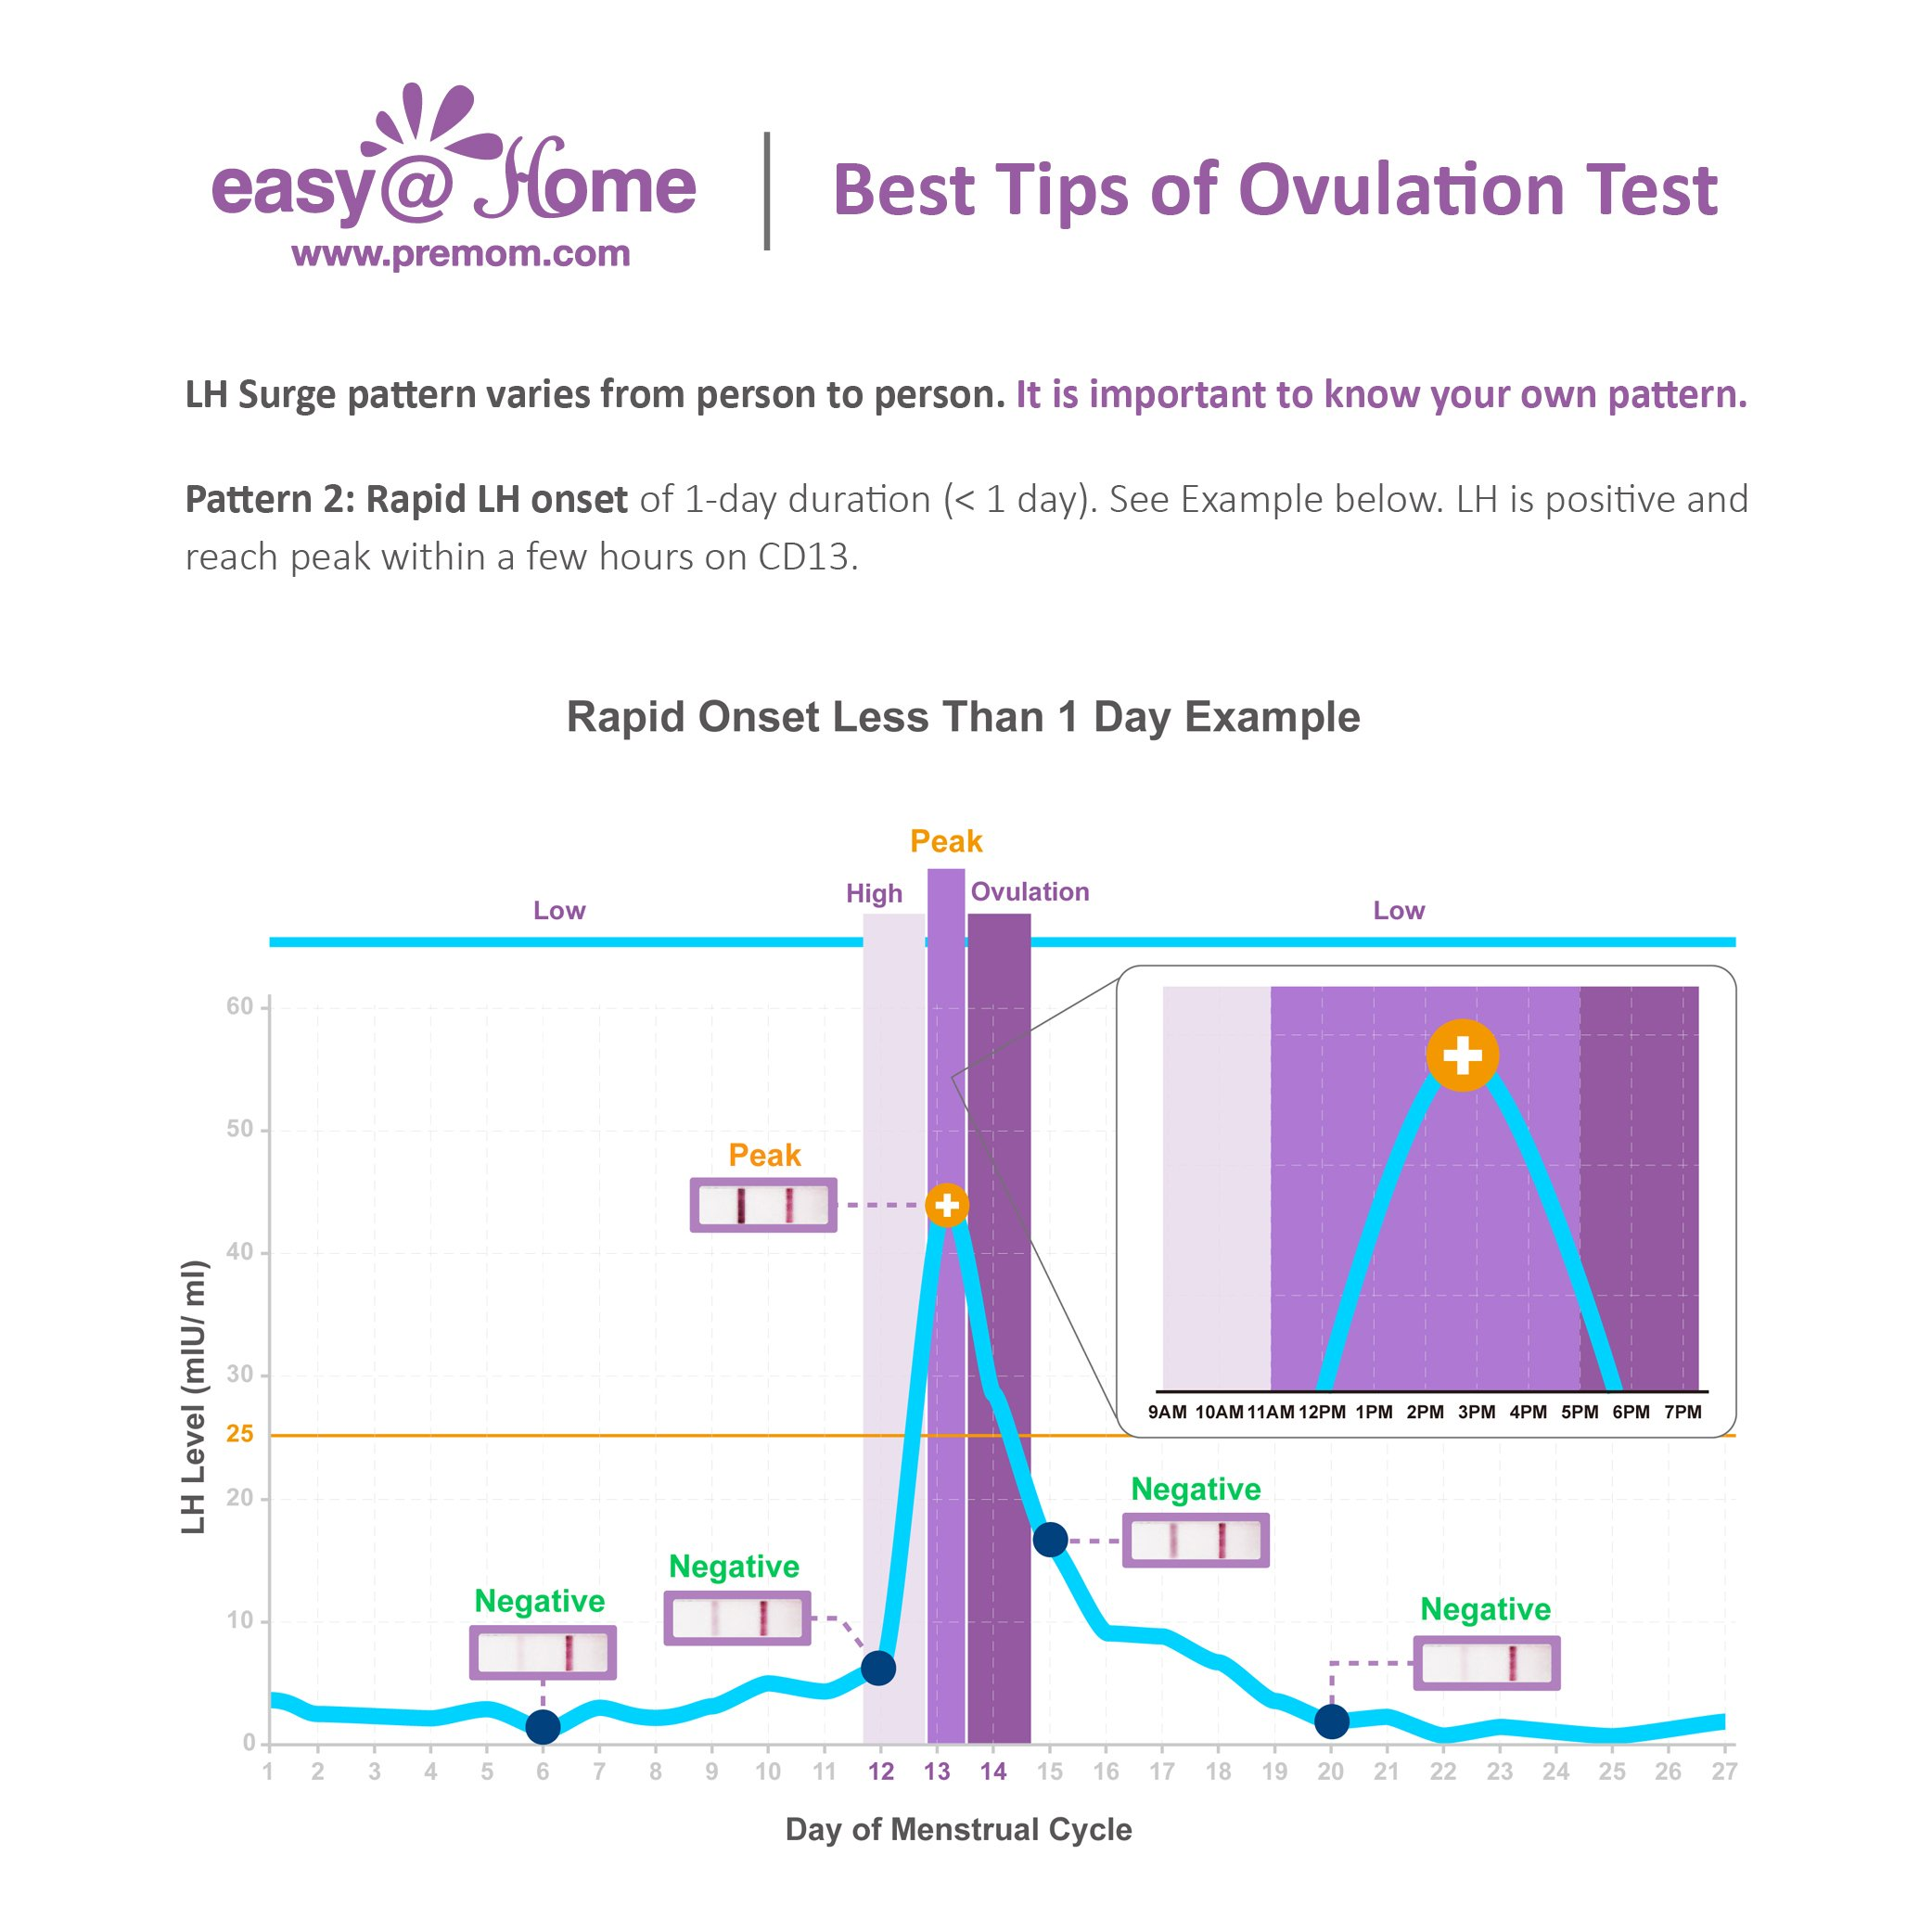 Easy@Home branded 100 Ovulation (LH) Urine Test Strips, 100 Tests by Easy@Home (Image #4)